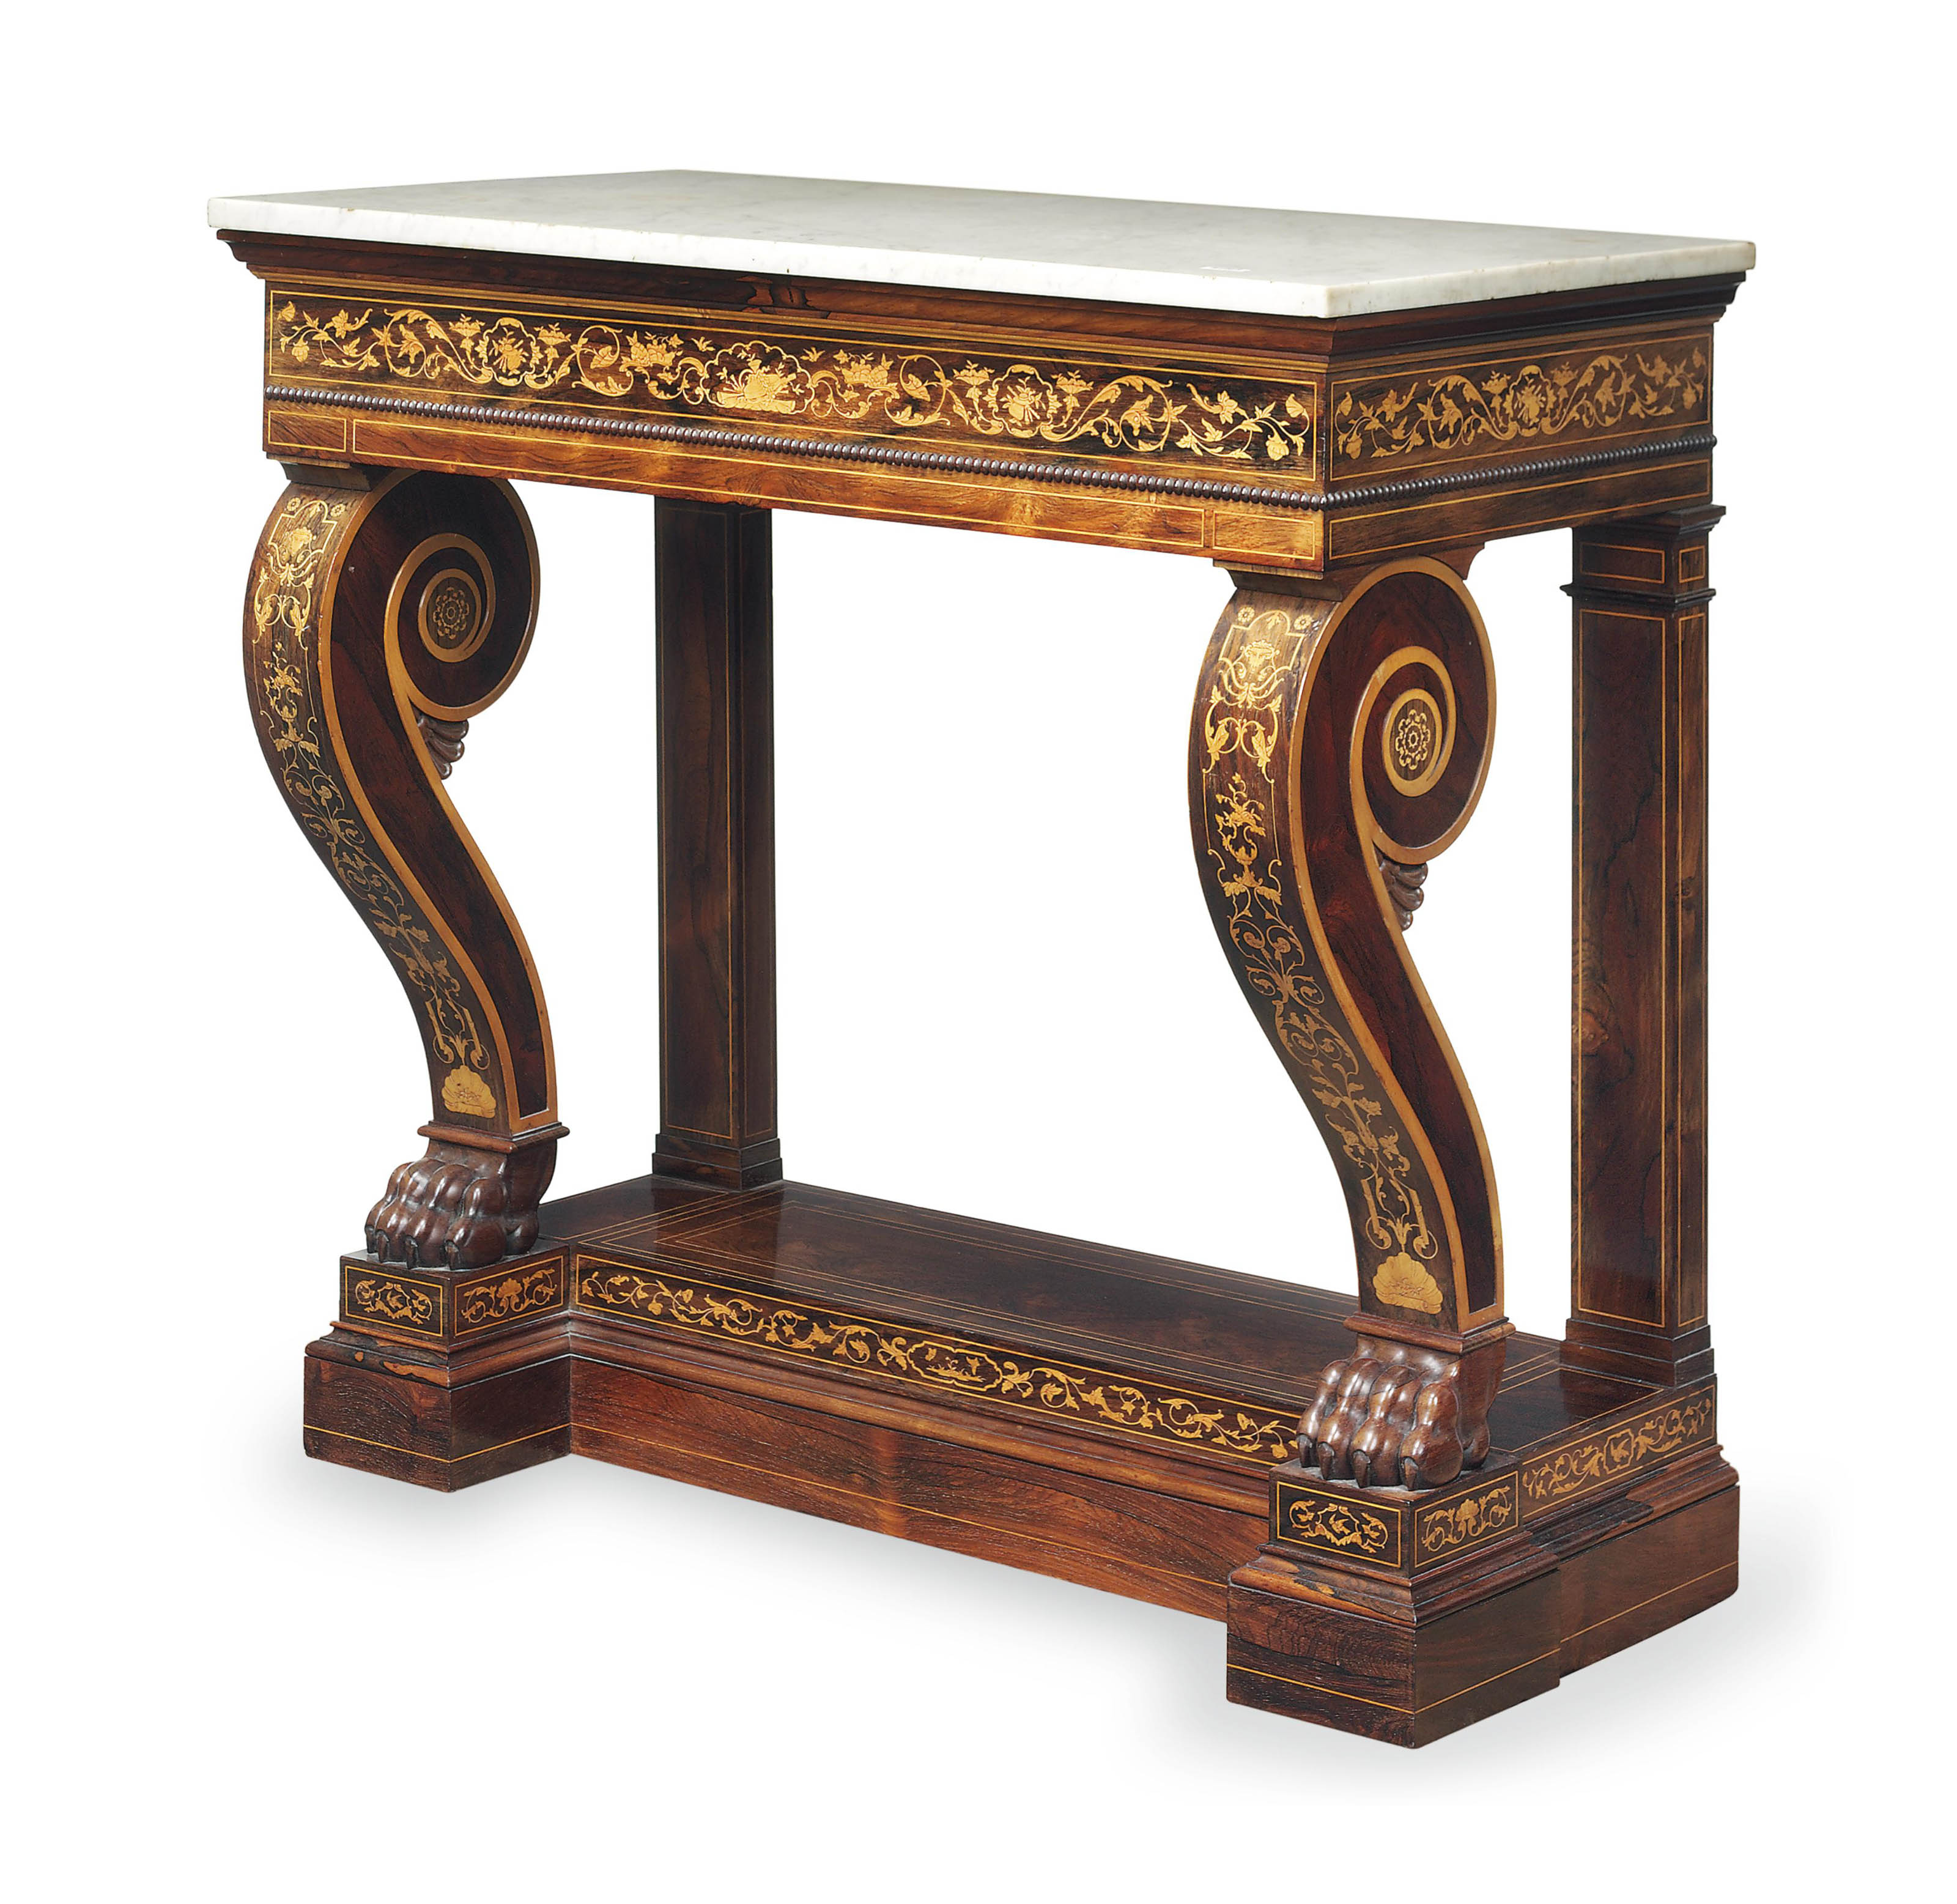 A CHARLES X ROSEWOOD, BOXWOOD AND MARQUETRY CONSOLE TABLE